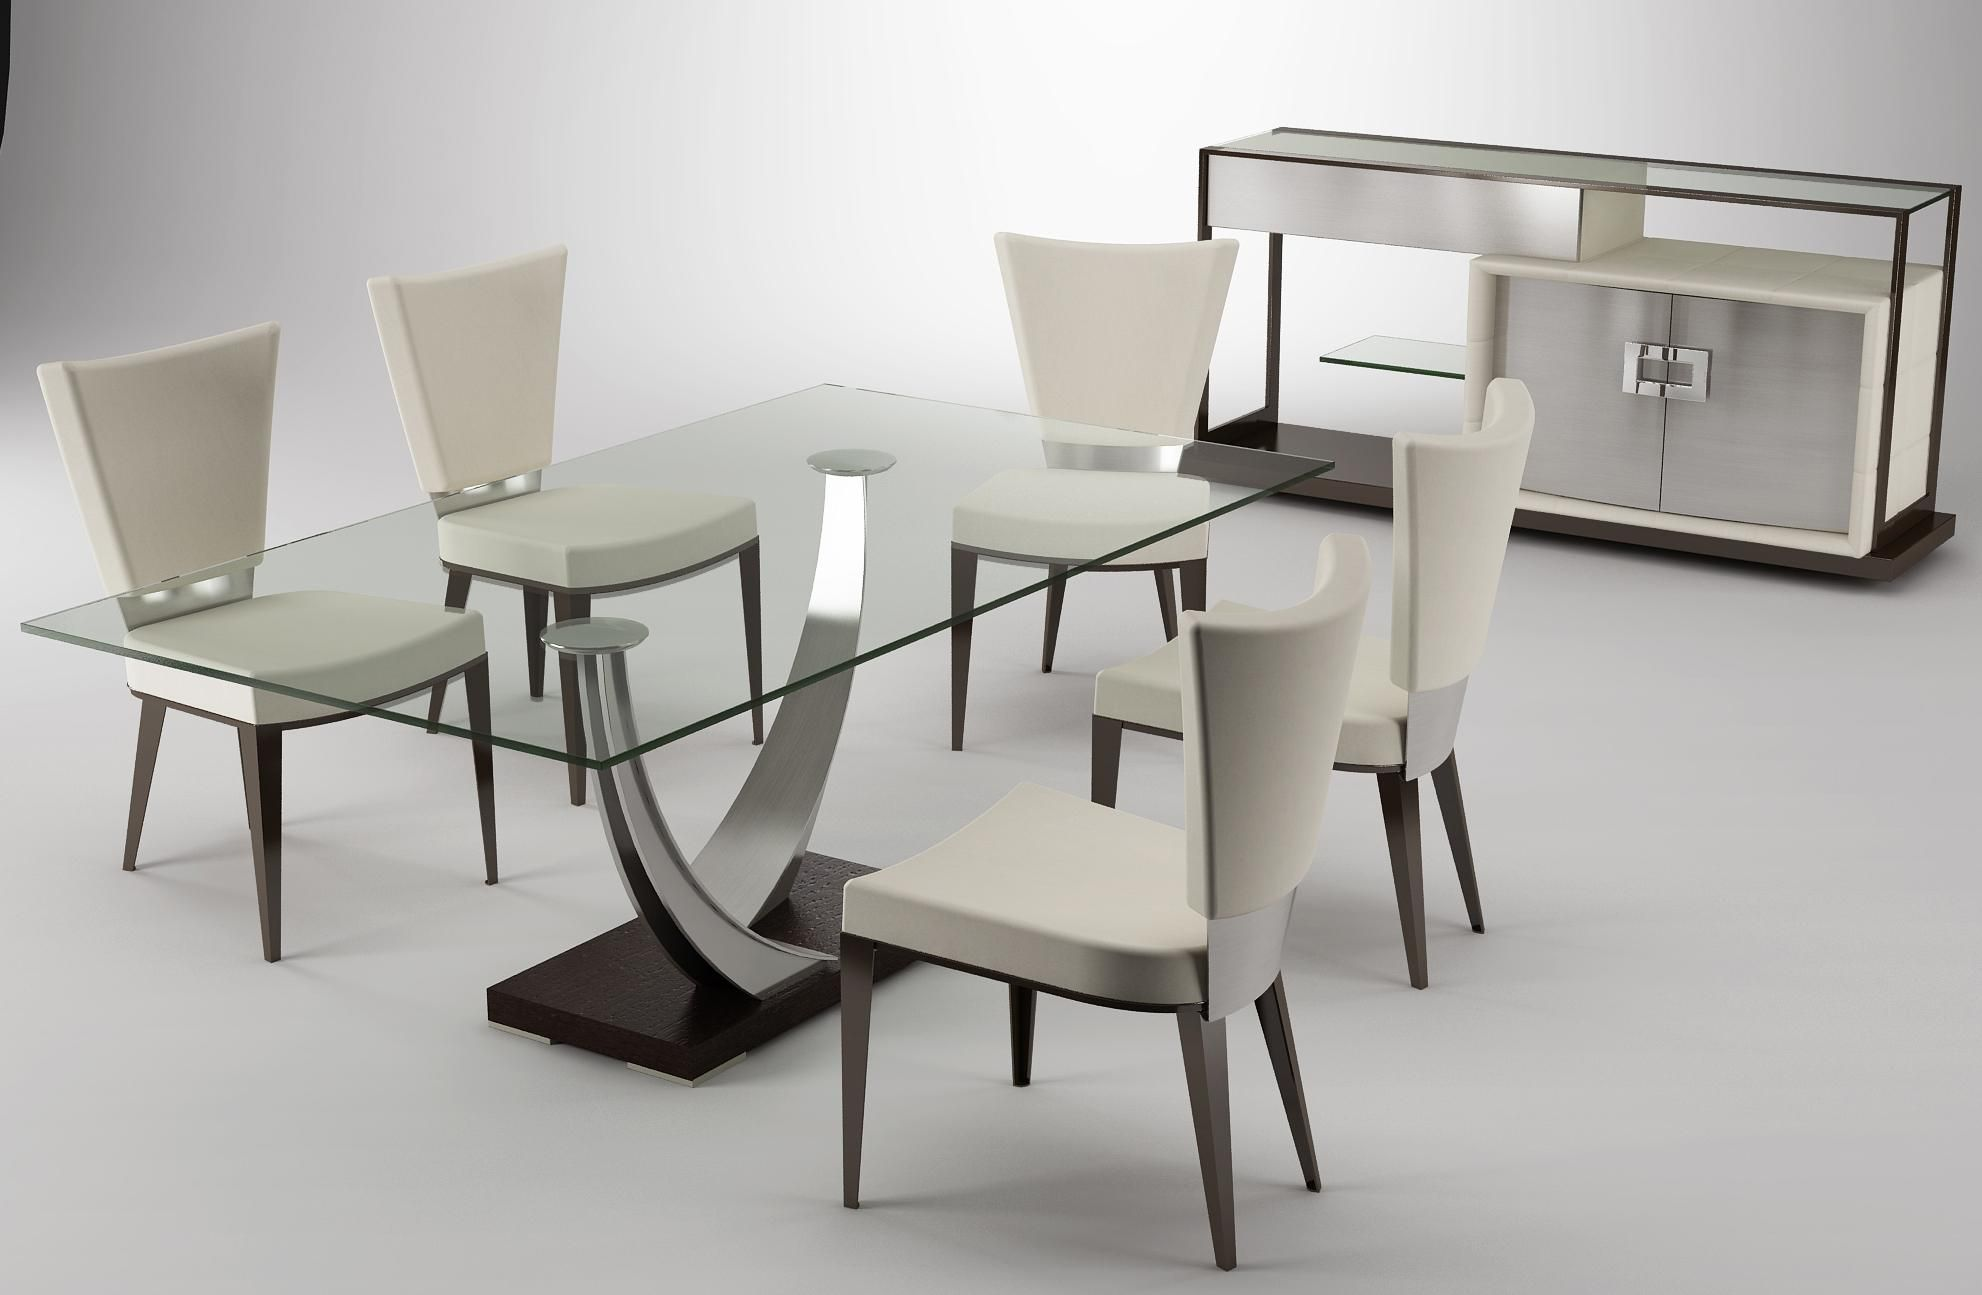 Amazing modern stylish dining room table set designs elite tangent glass top furniture stores - Modern dining table ideas ...